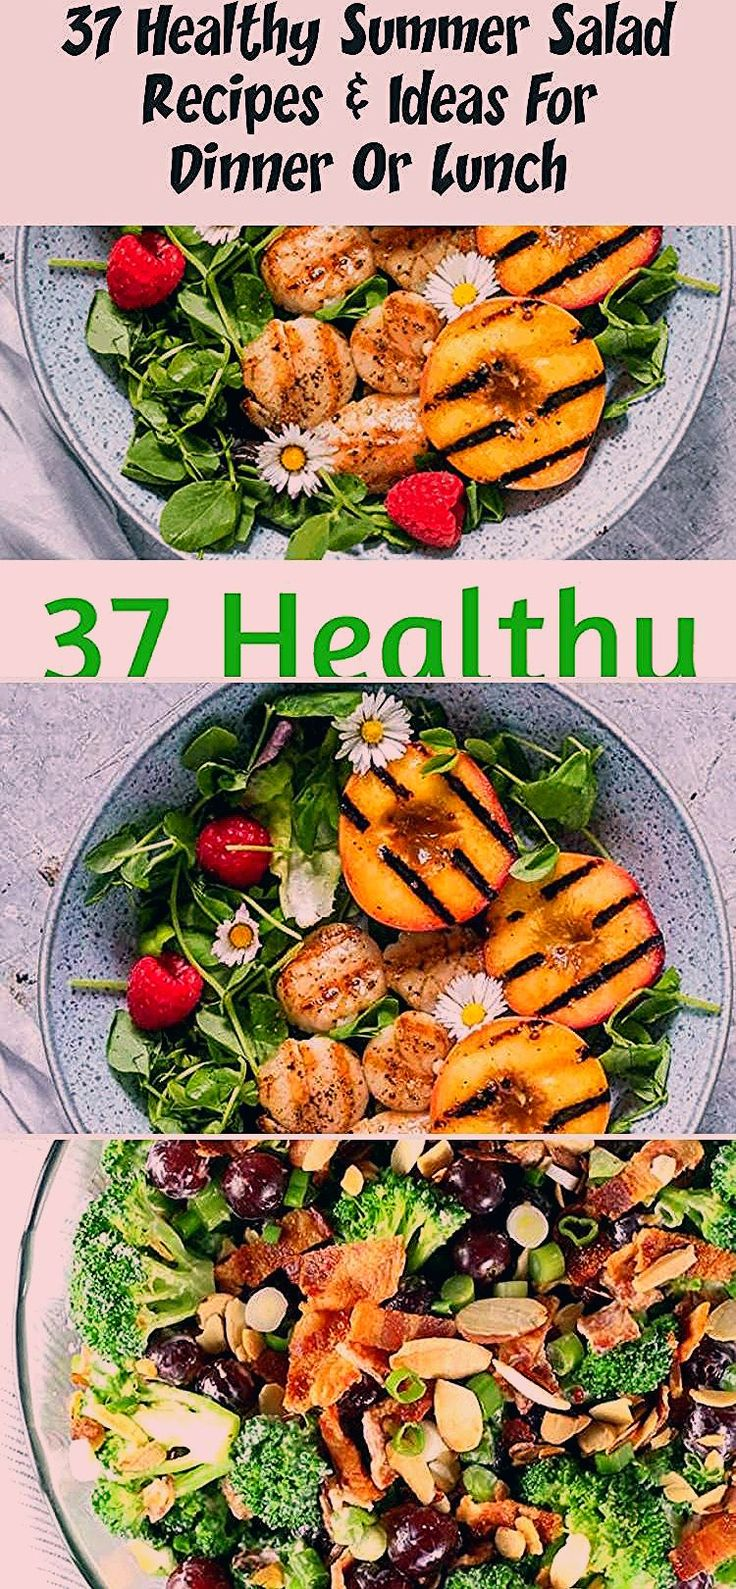 37 Healthy Summer Salad Recipes for a Crowd or Summer picnic or potluck.  Easy recipes with chicken, pasta and veggies for BBQ or dinner.  Low Carb and cold pasta salad recipes #Summersaladrecipes #Sidesaladrecipes #Lettucesaladrecipes #Greeksaladrecipes #saladrecipesForDinner